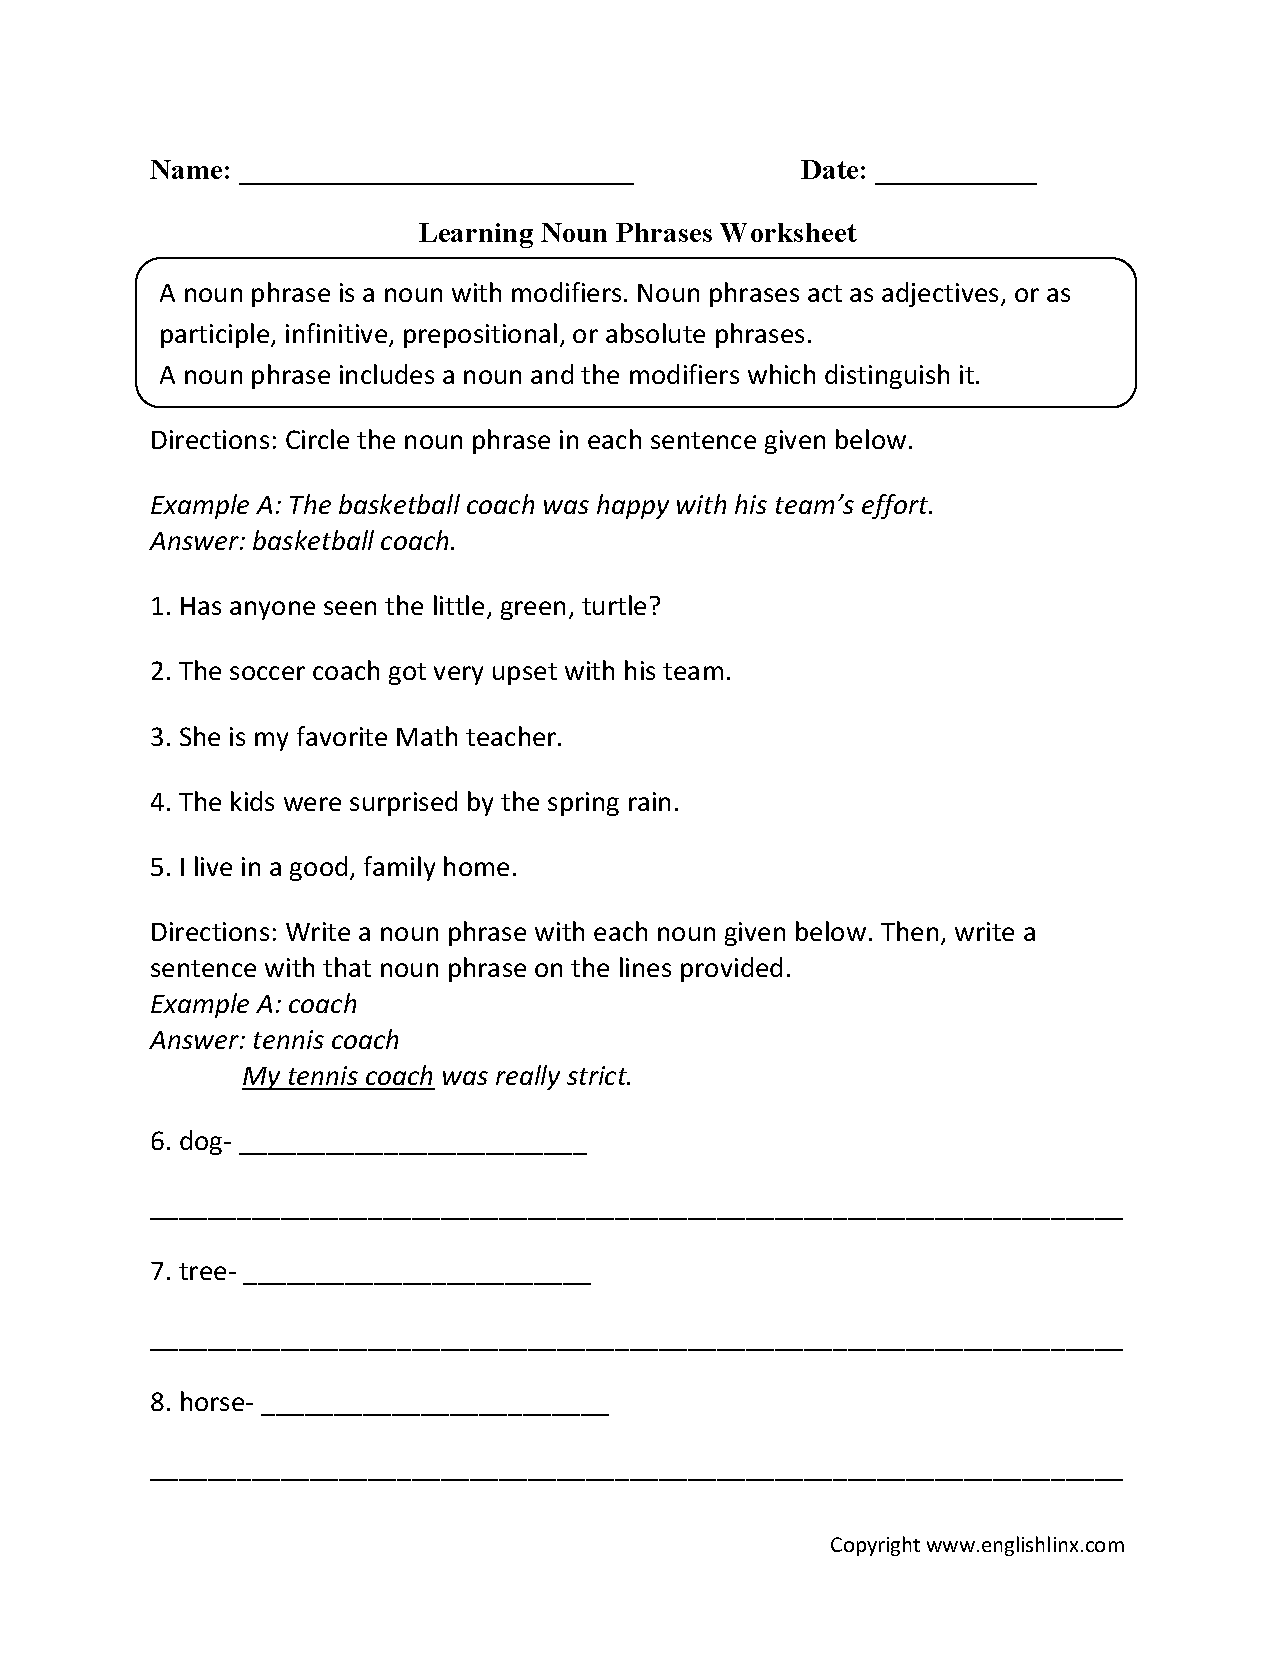 Learning Noun Phrases Worksheets With Images